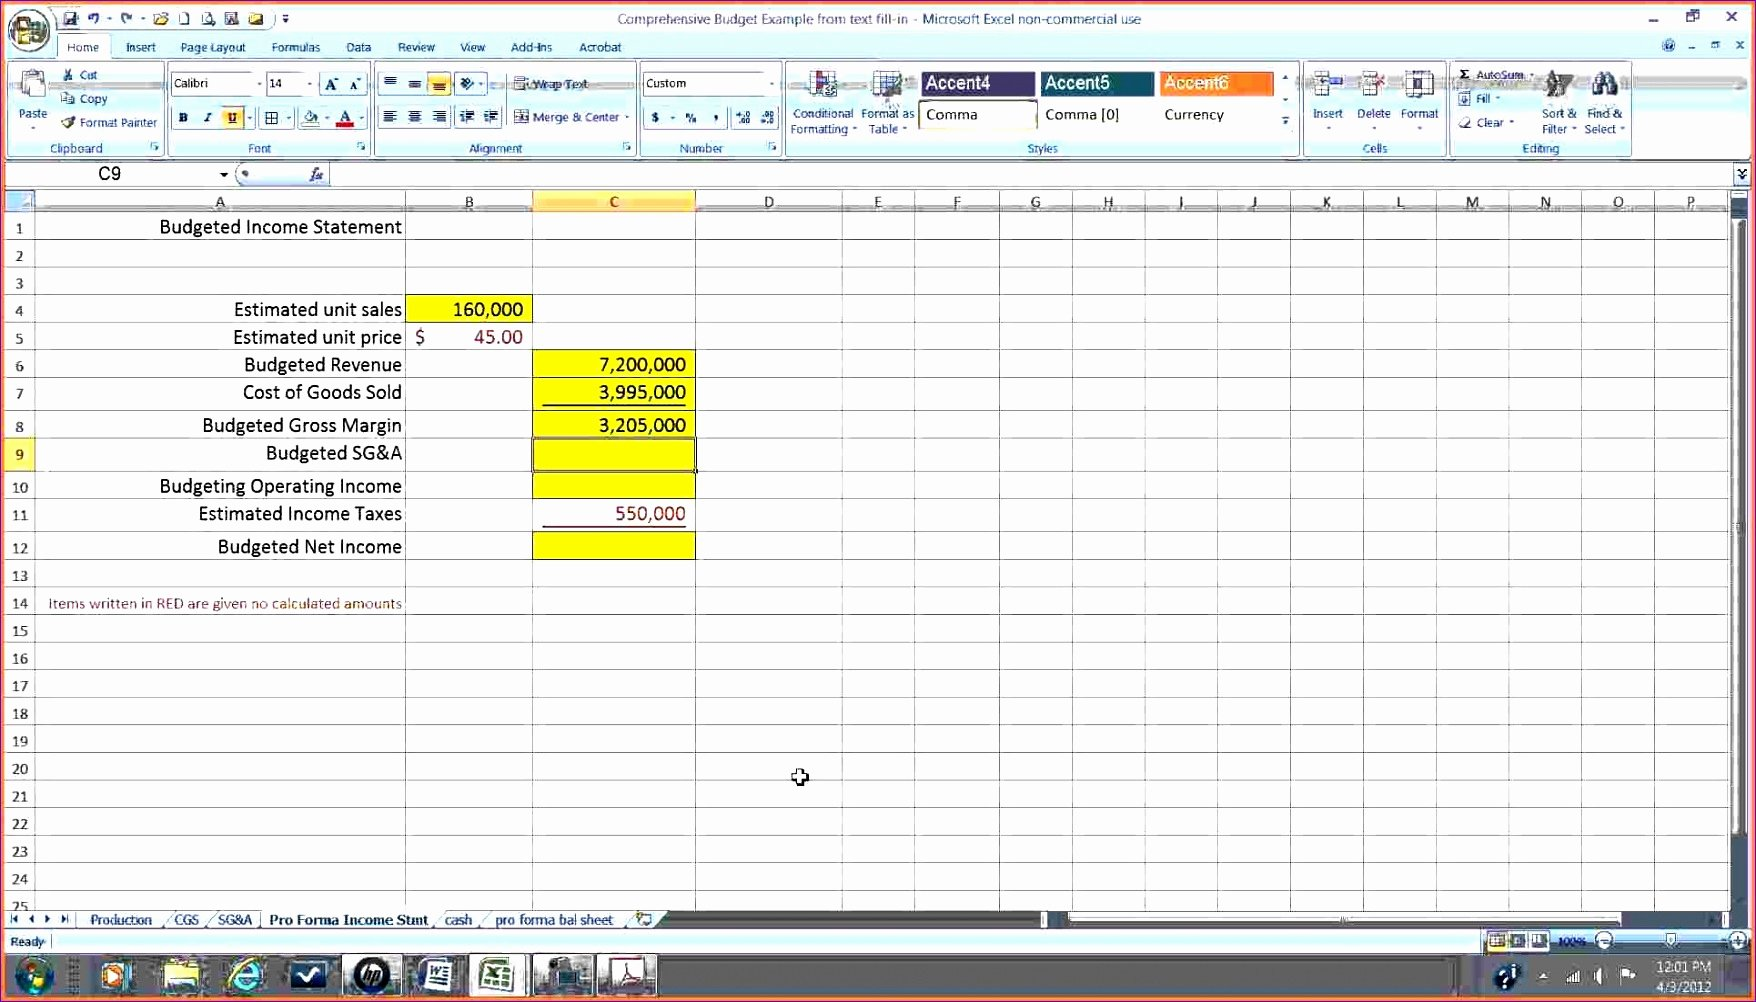 Income Statement Template Xls Unique 8 Pro forma In E Statement Excel Template